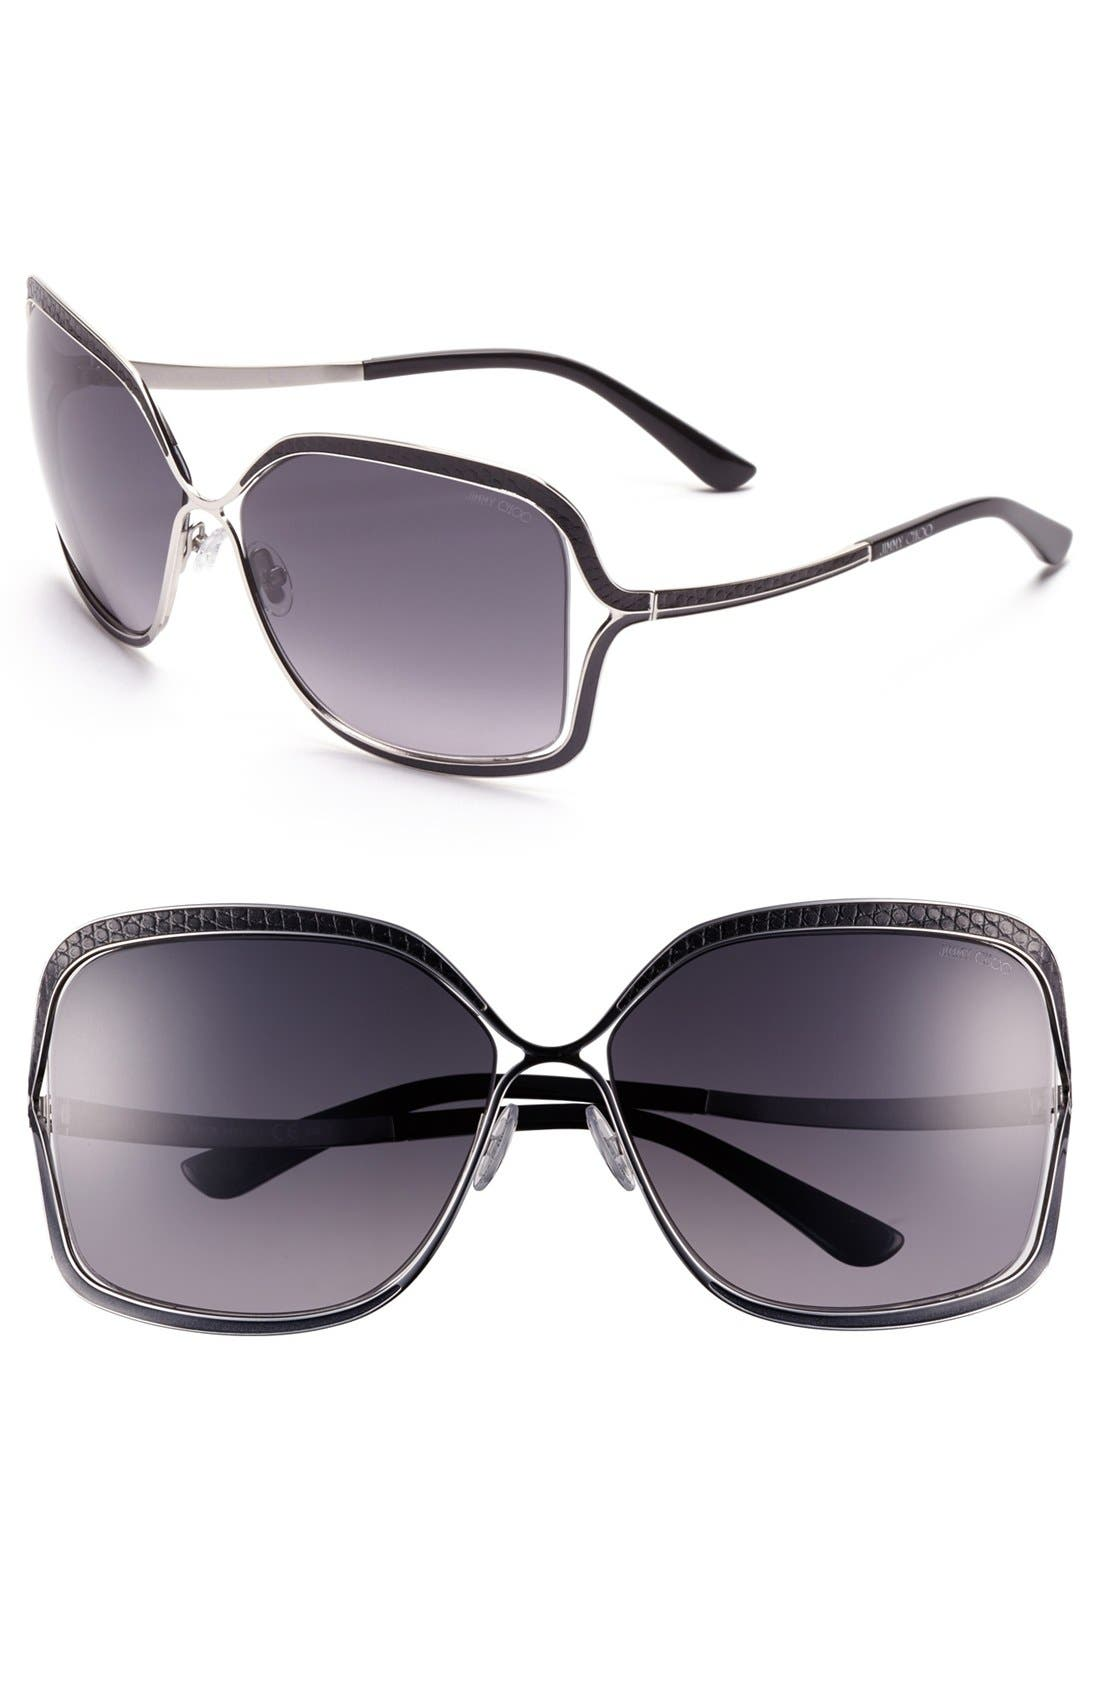 Alternate Image 1 Selected - Jimmy Choo 63mm Oversized Sunglasses